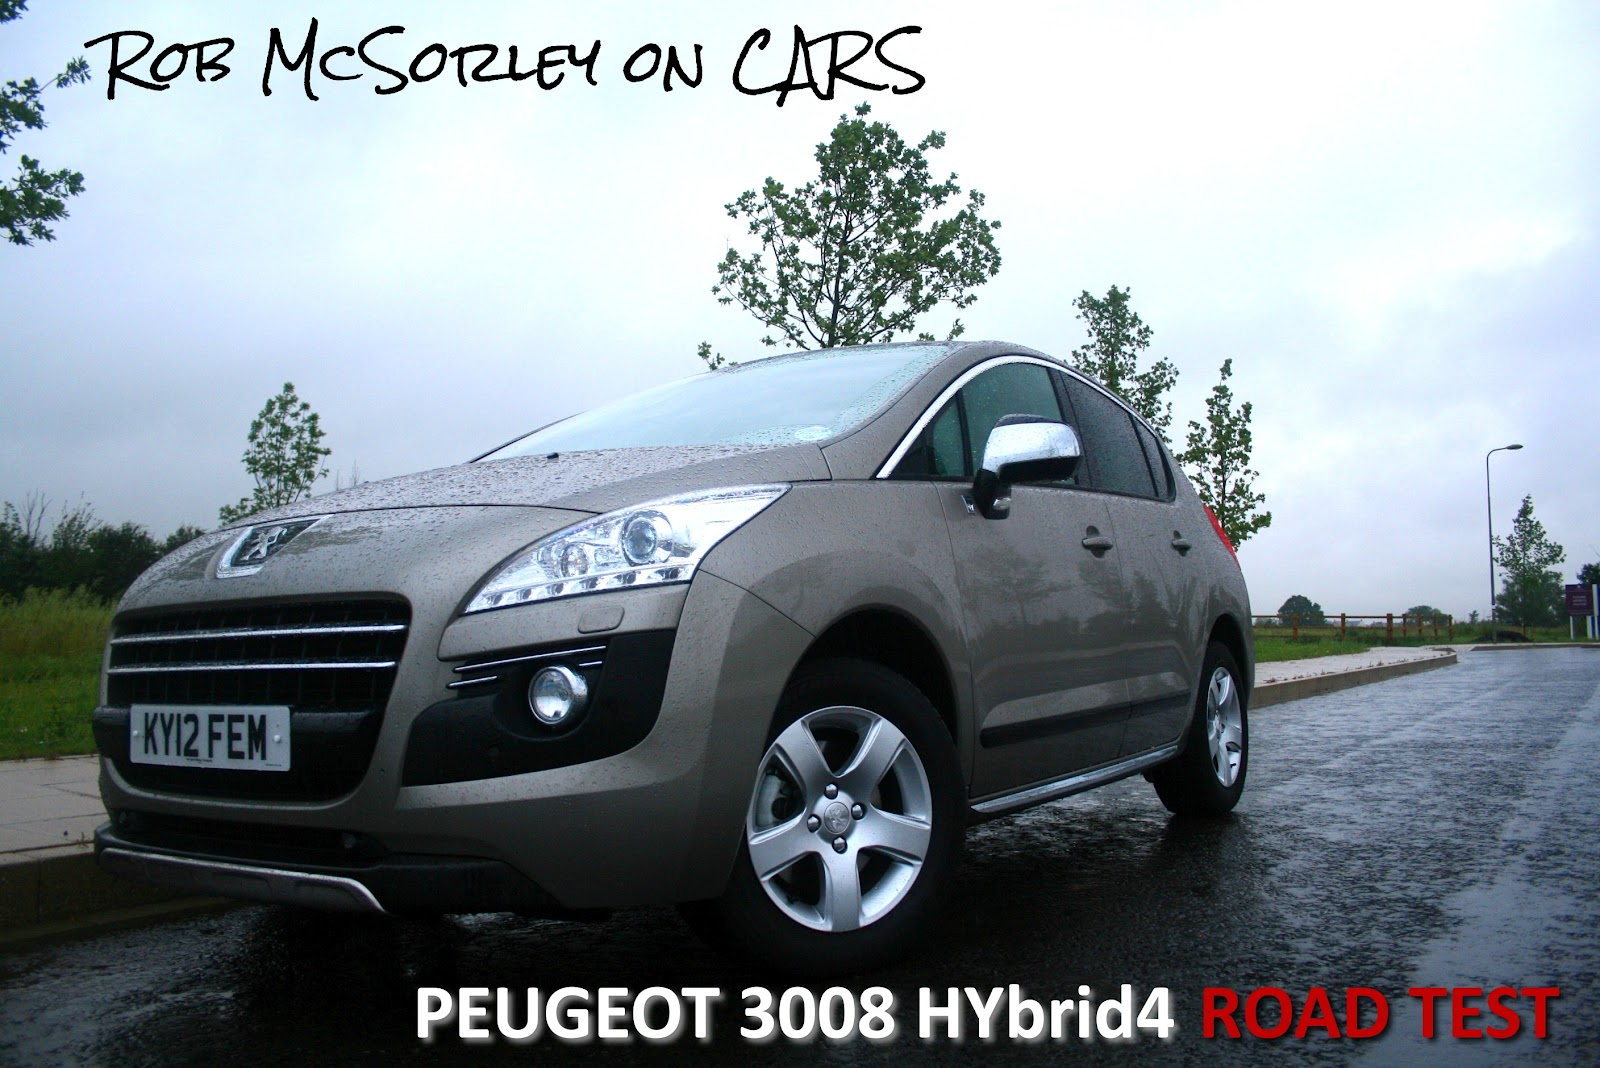 robmcsorleyoncars 2012 peugeot 3008 hybrid4 full road test. Black Bedroom Furniture Sets. Home Design Ideas